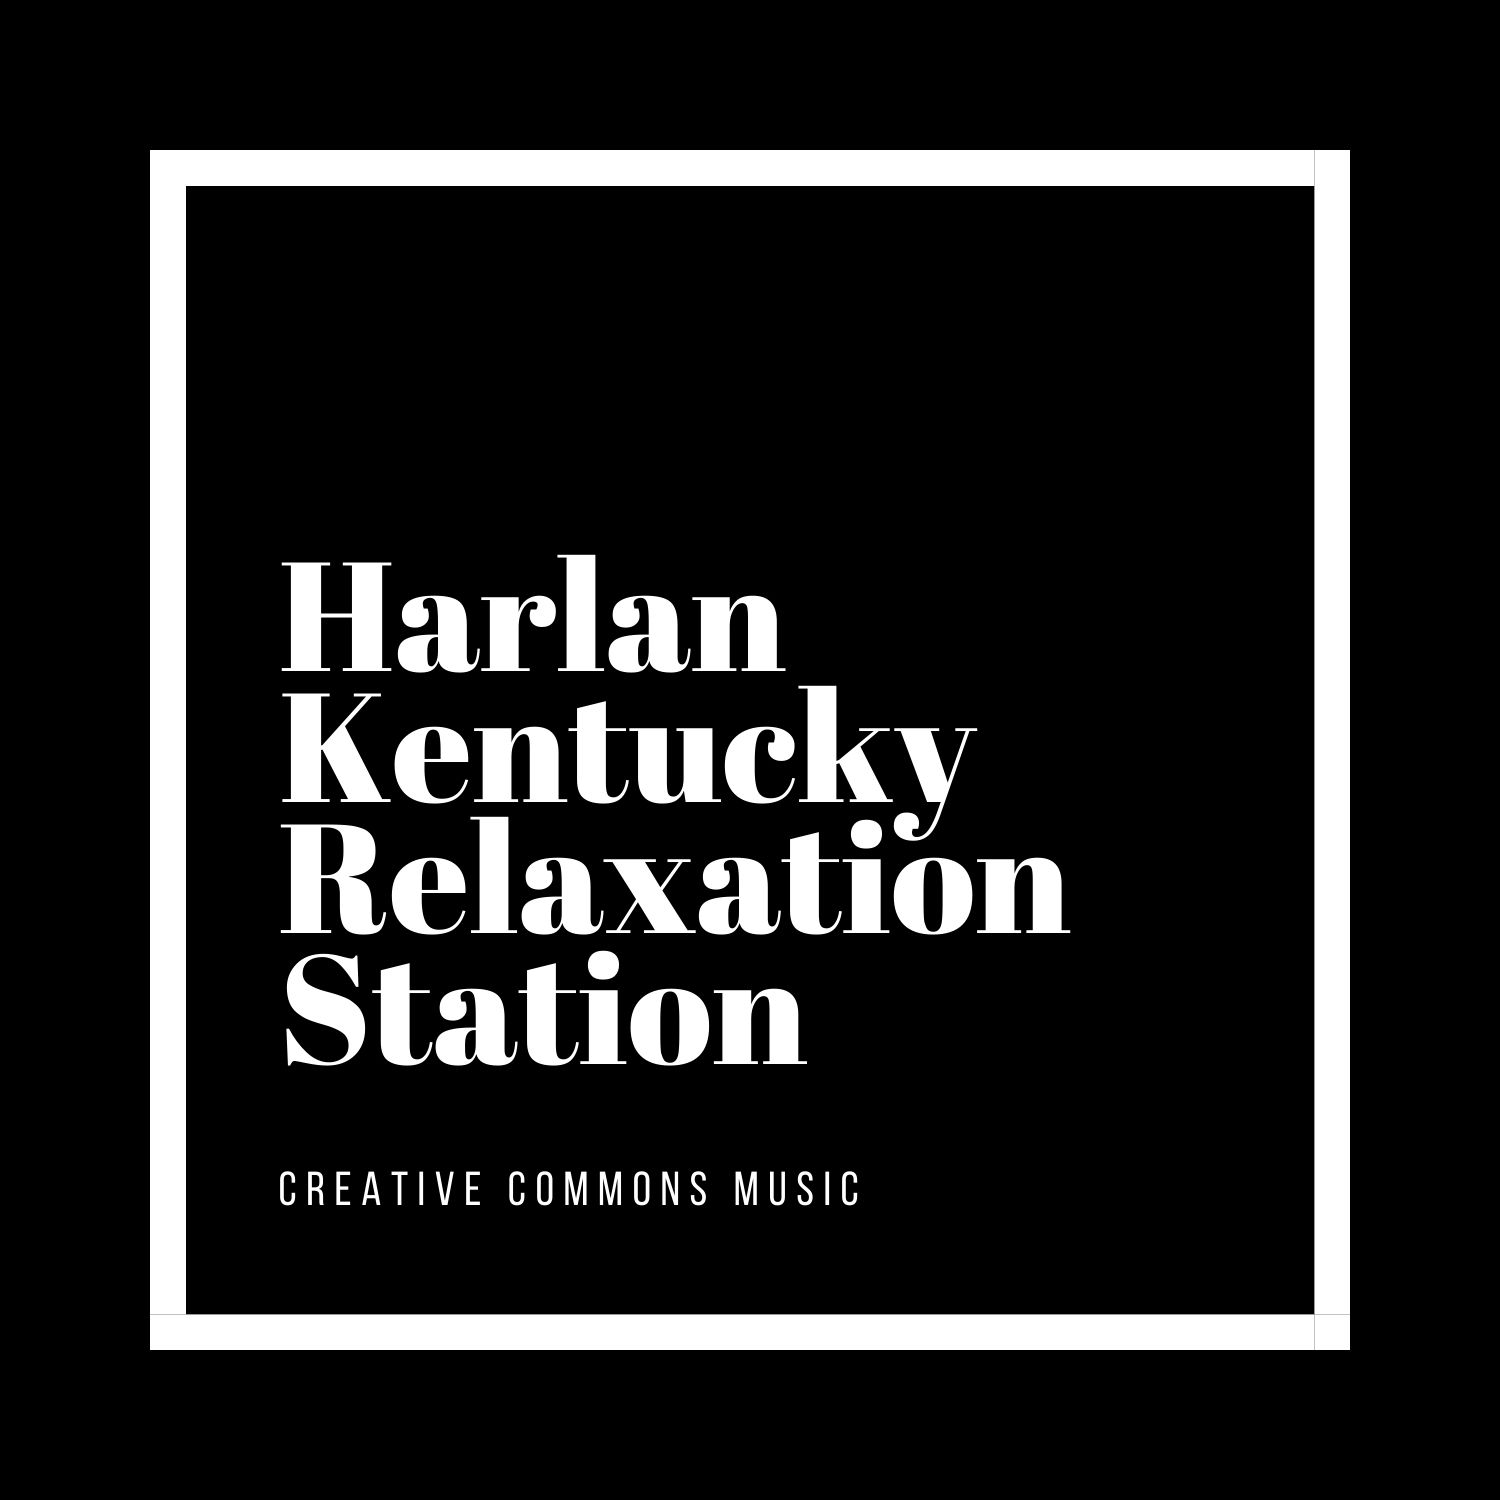 Harlan Kentucky Relaxation Station